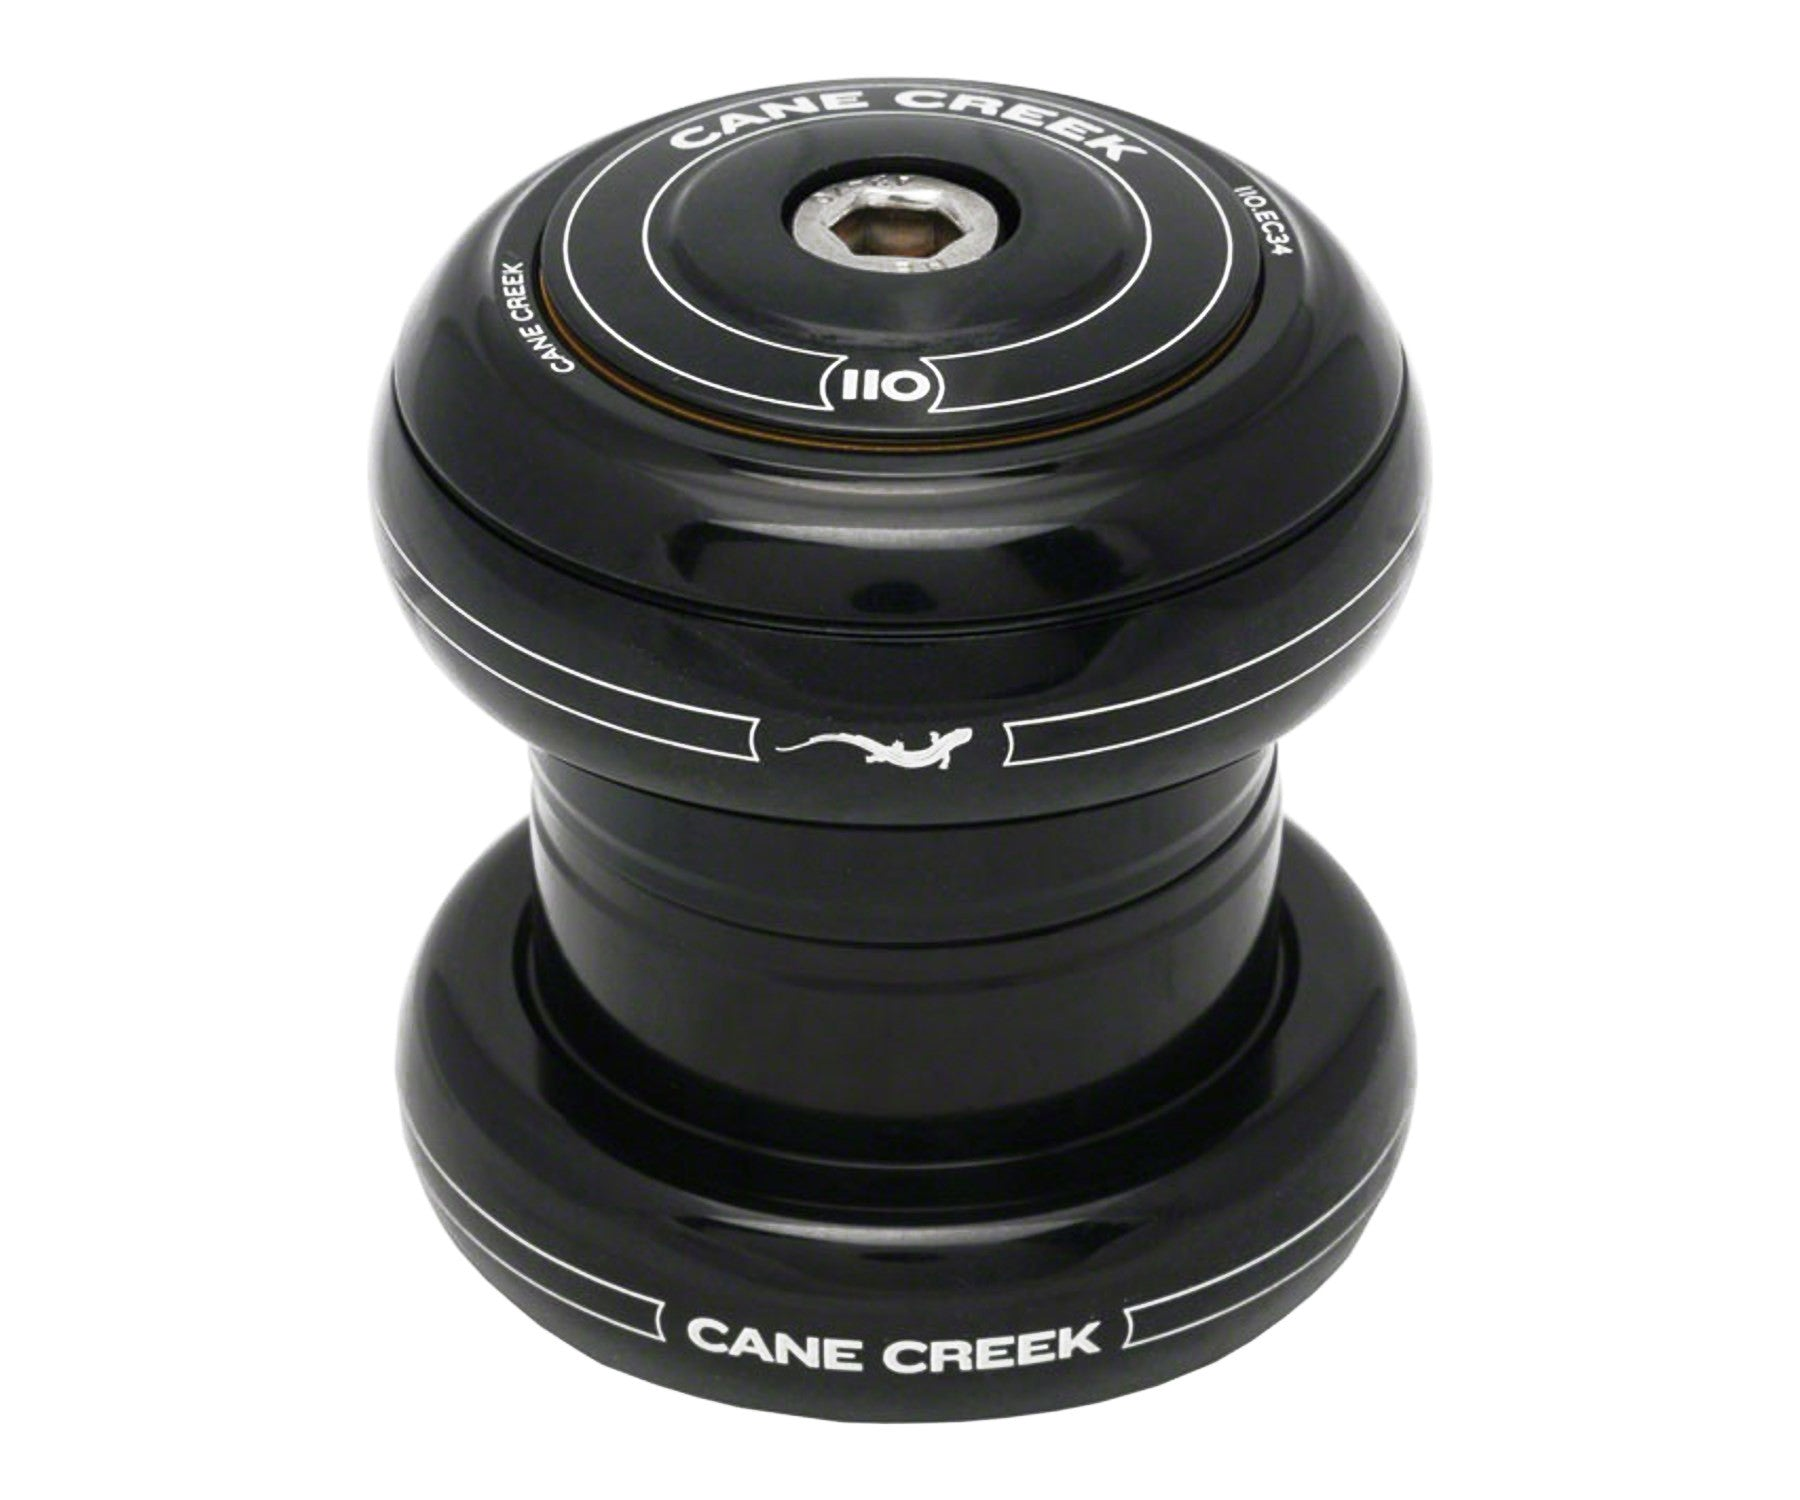 Cane Creek 110 Classic threadless headset - Retrogression